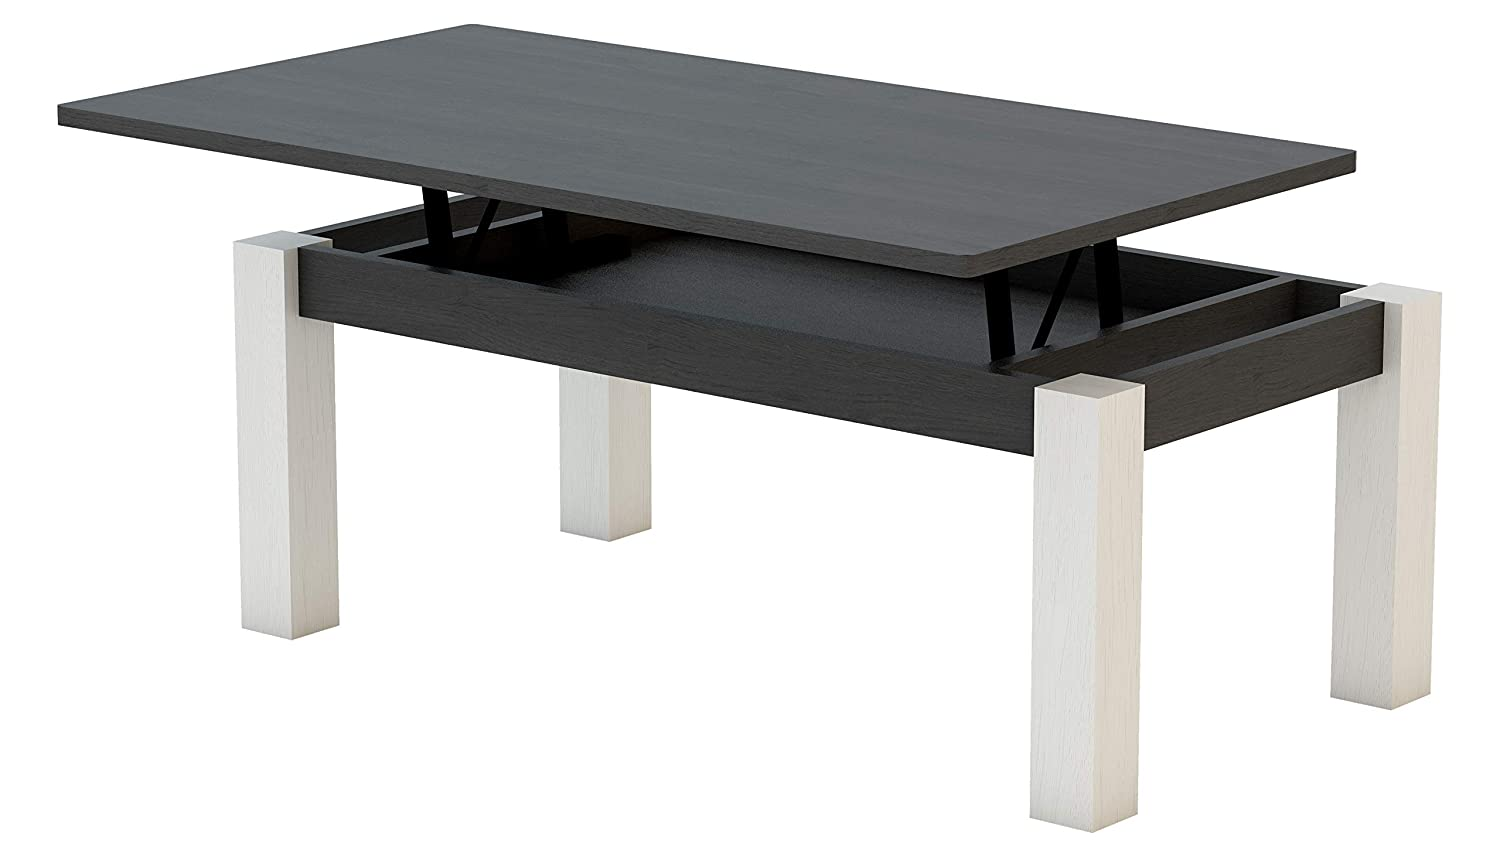 KR Decor MZ444 Mesa de Centro elevable Rectangular, Roble, Negro Madera/Blanco Artic, 100x50x42.2 cm